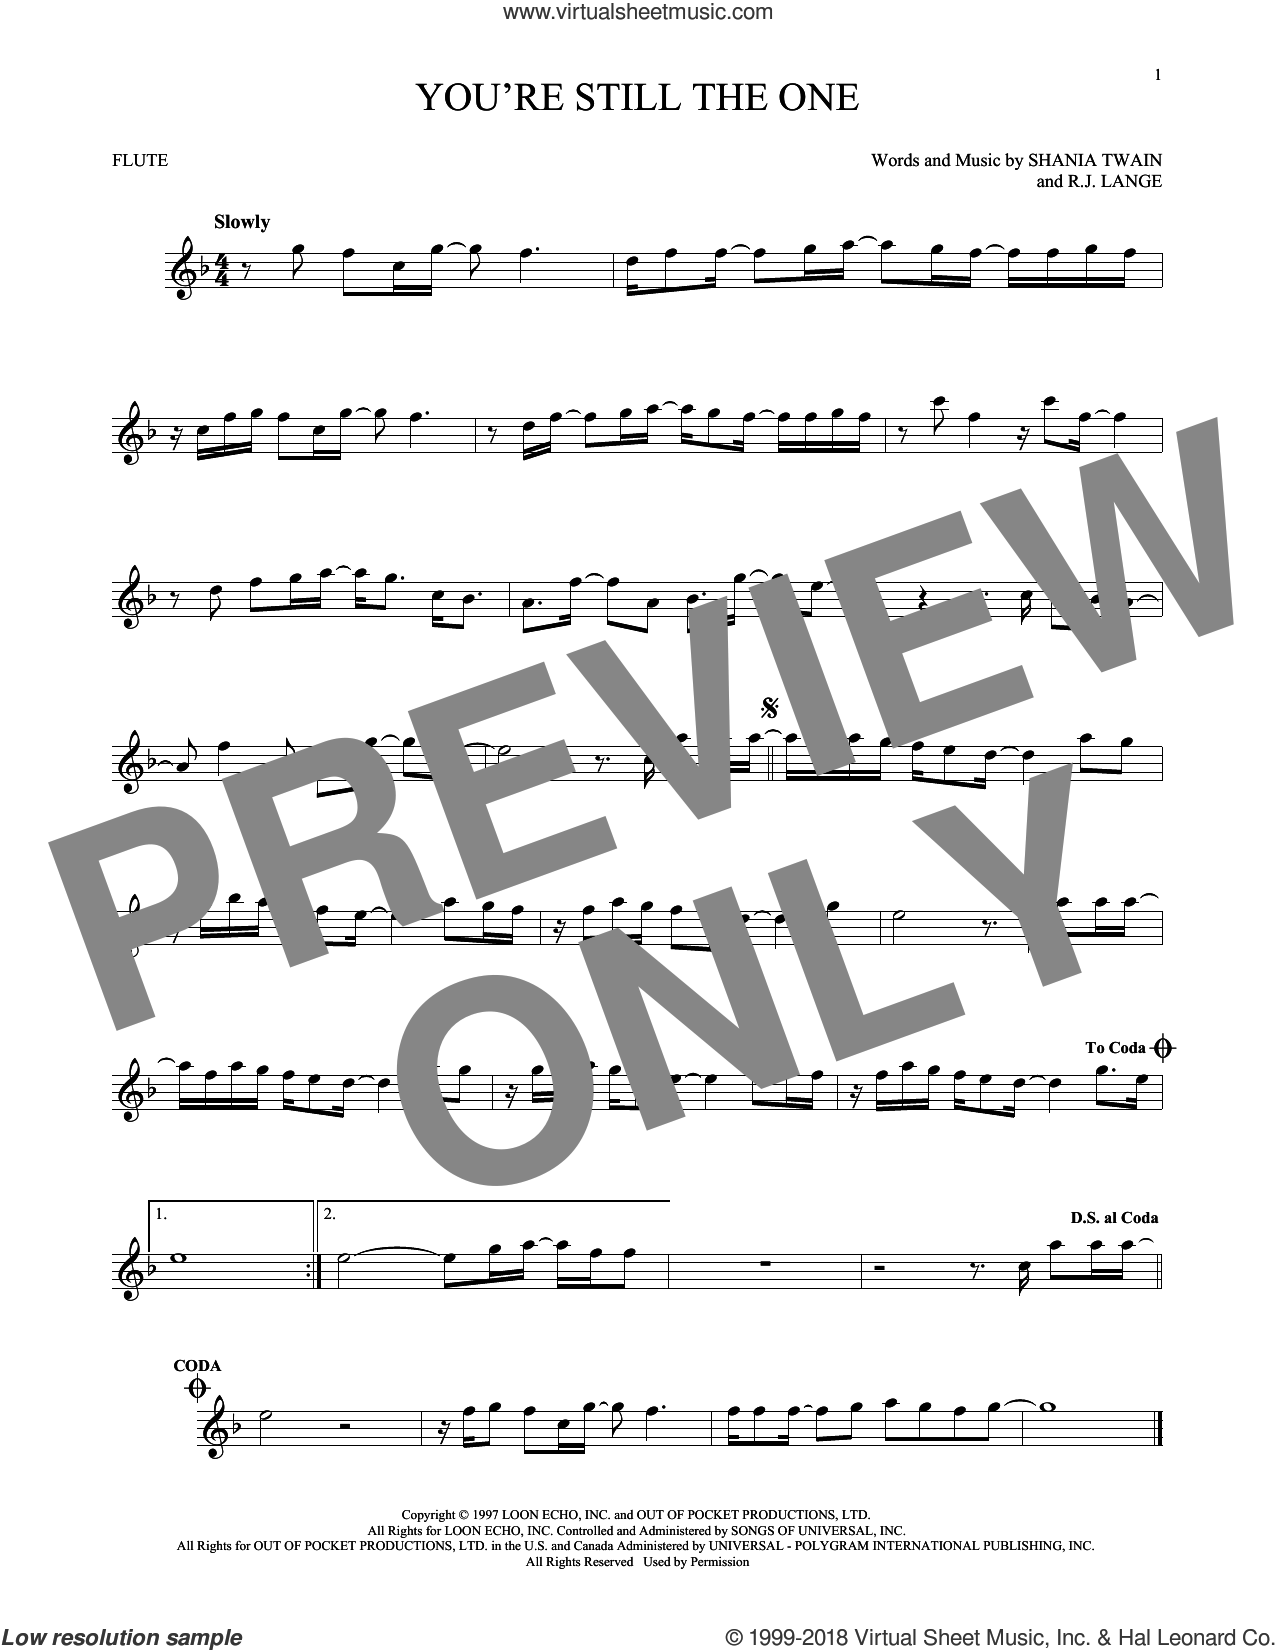 You're Still The One sheet music for flute solo by Robert John Lange and Shania Twain. Score Image Preview.